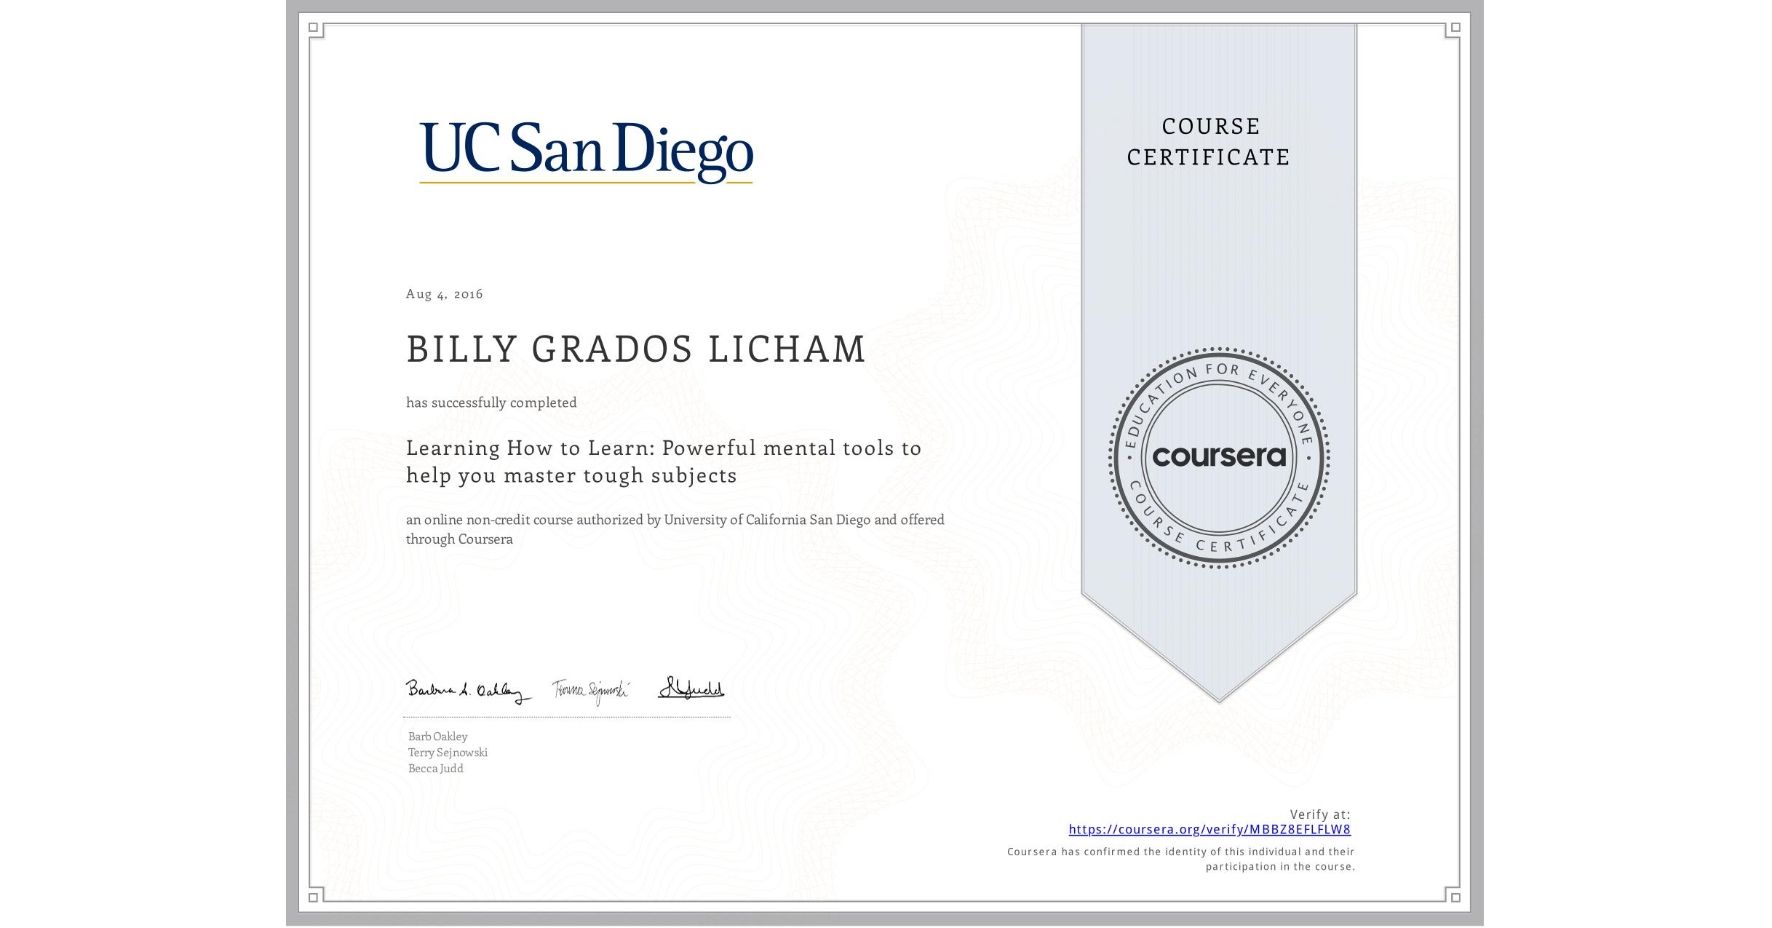 View certificate for BILLY GRADOS LICHAM, Learning How to Learn: Powerful mental tools to help you master tough subjects, an online non-credit course authorized by McMaster University & University of California San Diego and offered through Coursera